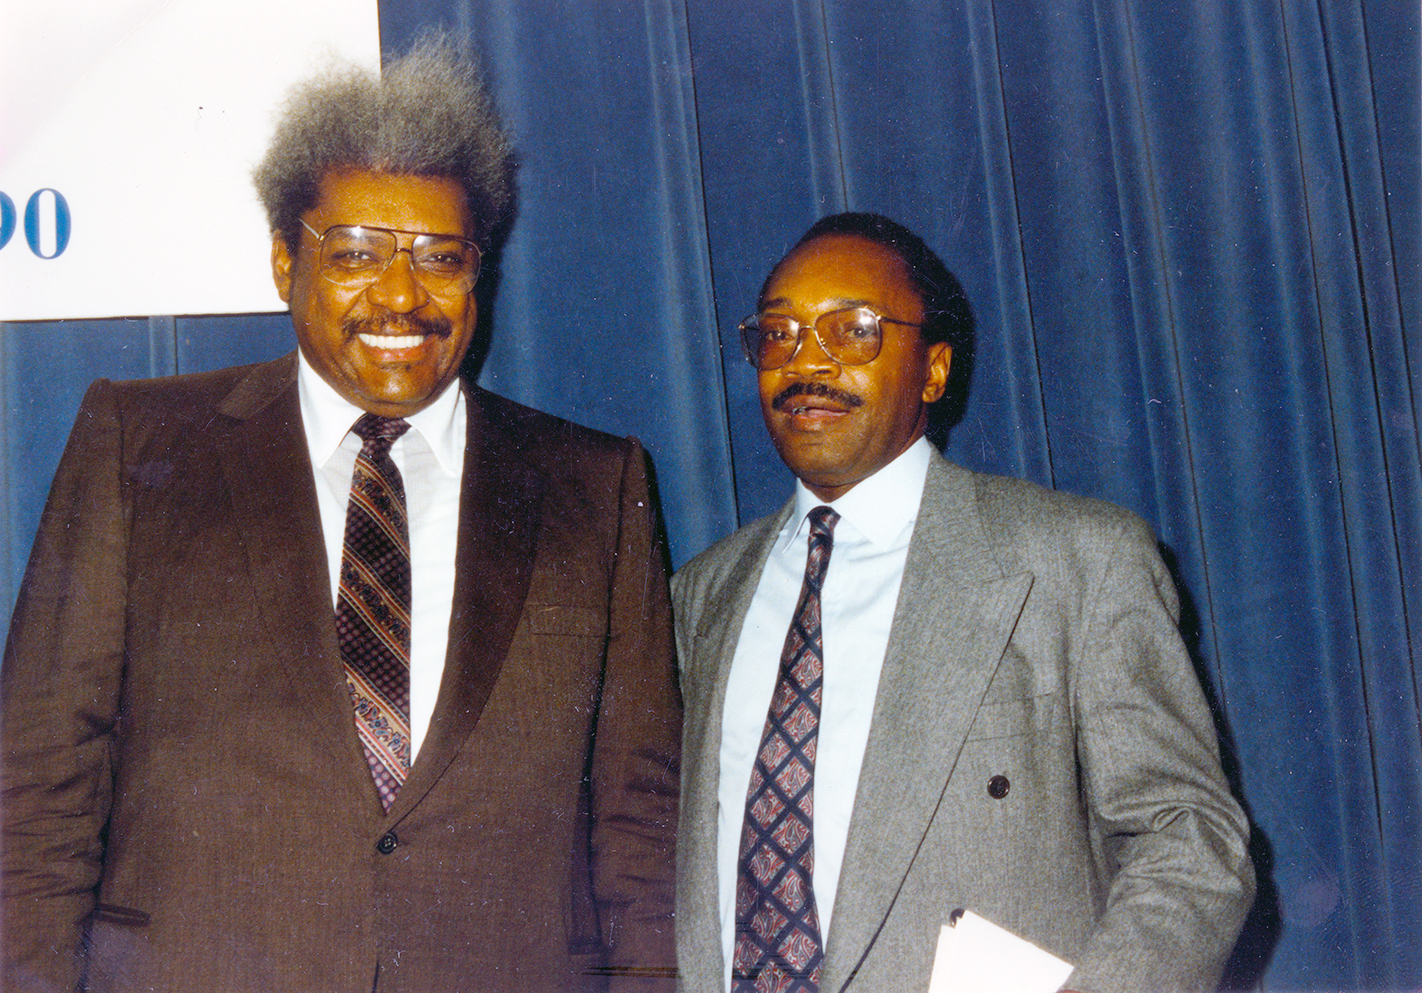 Ofield with Don King.jpg